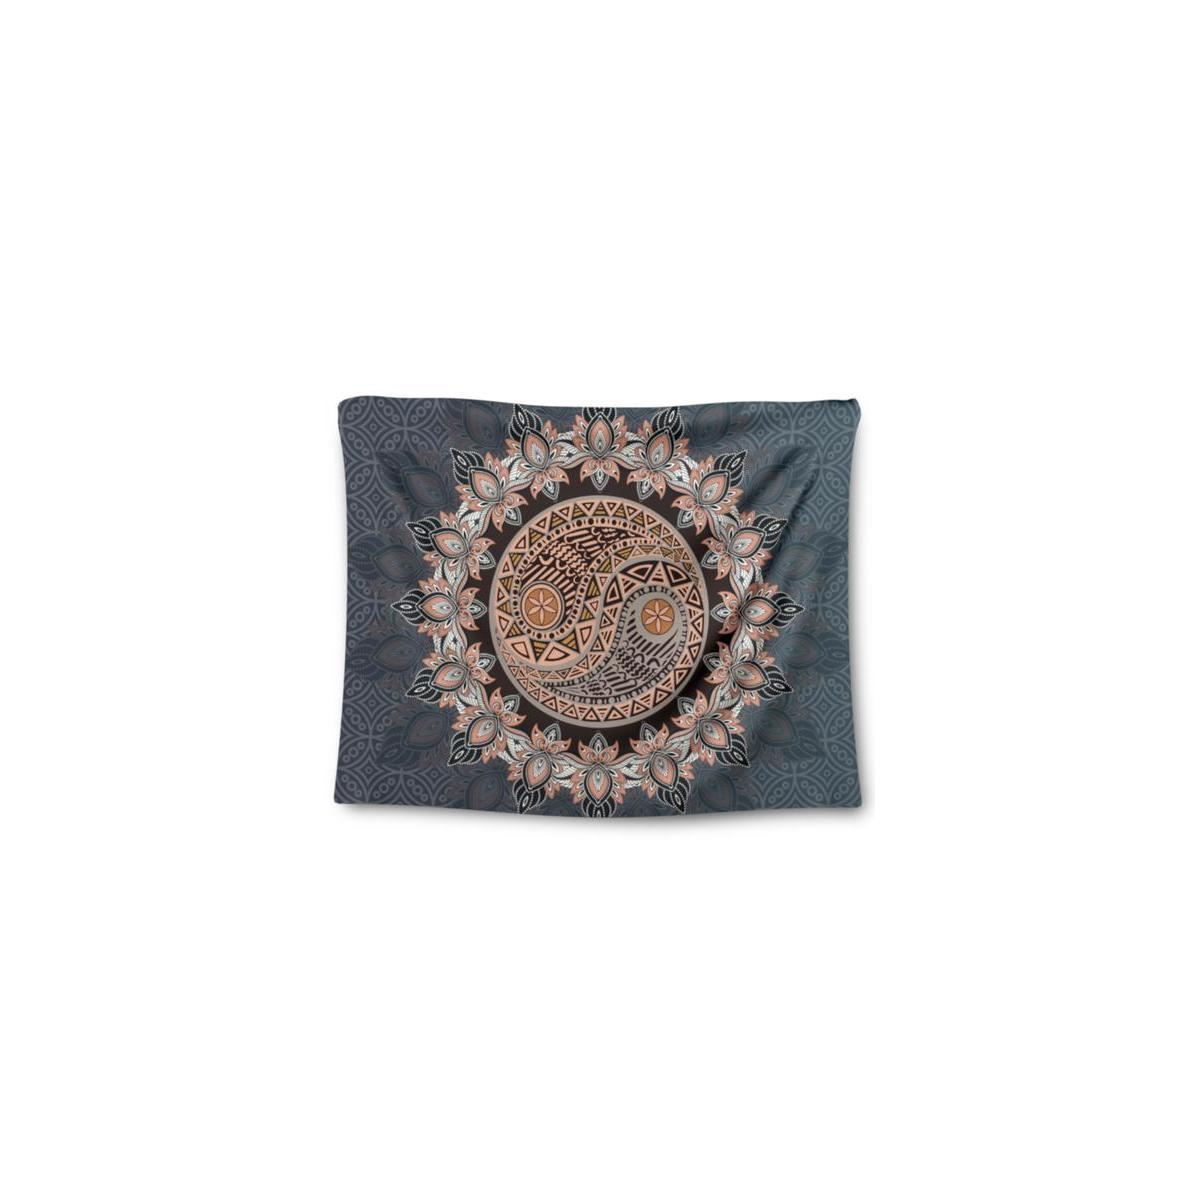 Mandala Tapestry Wall Hanging, 60 x 80 in, Boho Decor for Dorm, Living Room or Bedroom